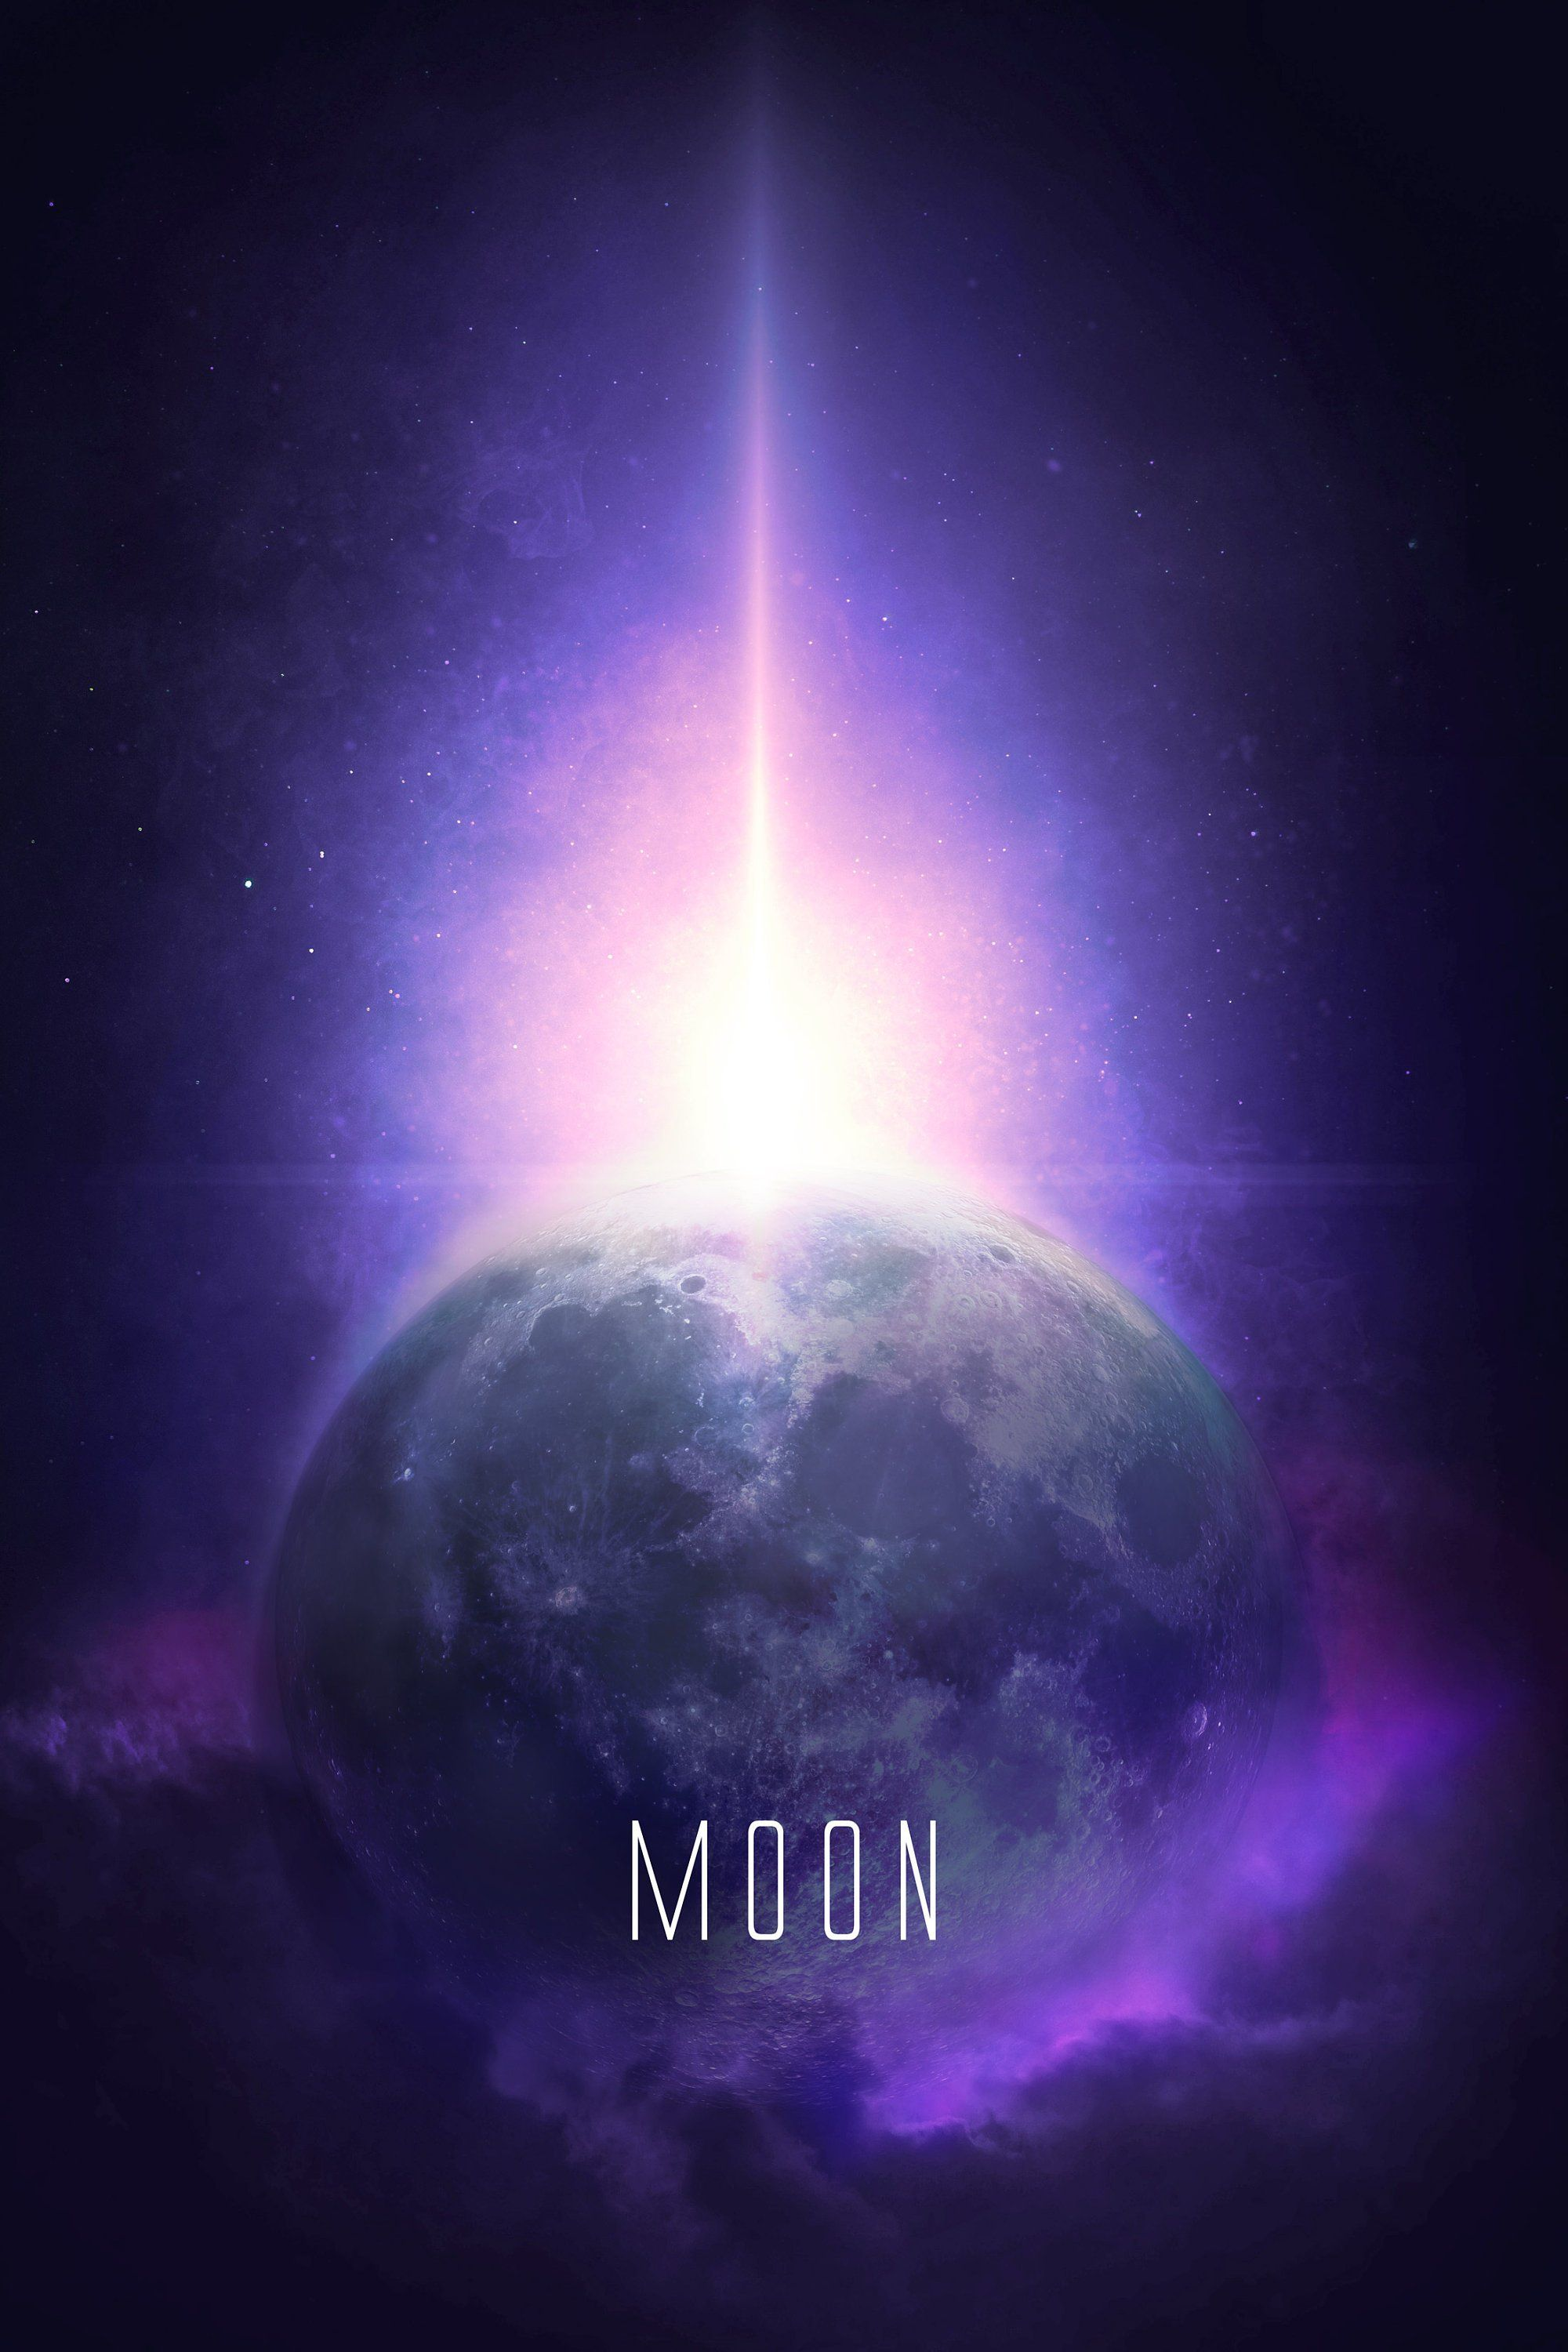 Moon Wall decor poster Moon poster, Space and astronomy